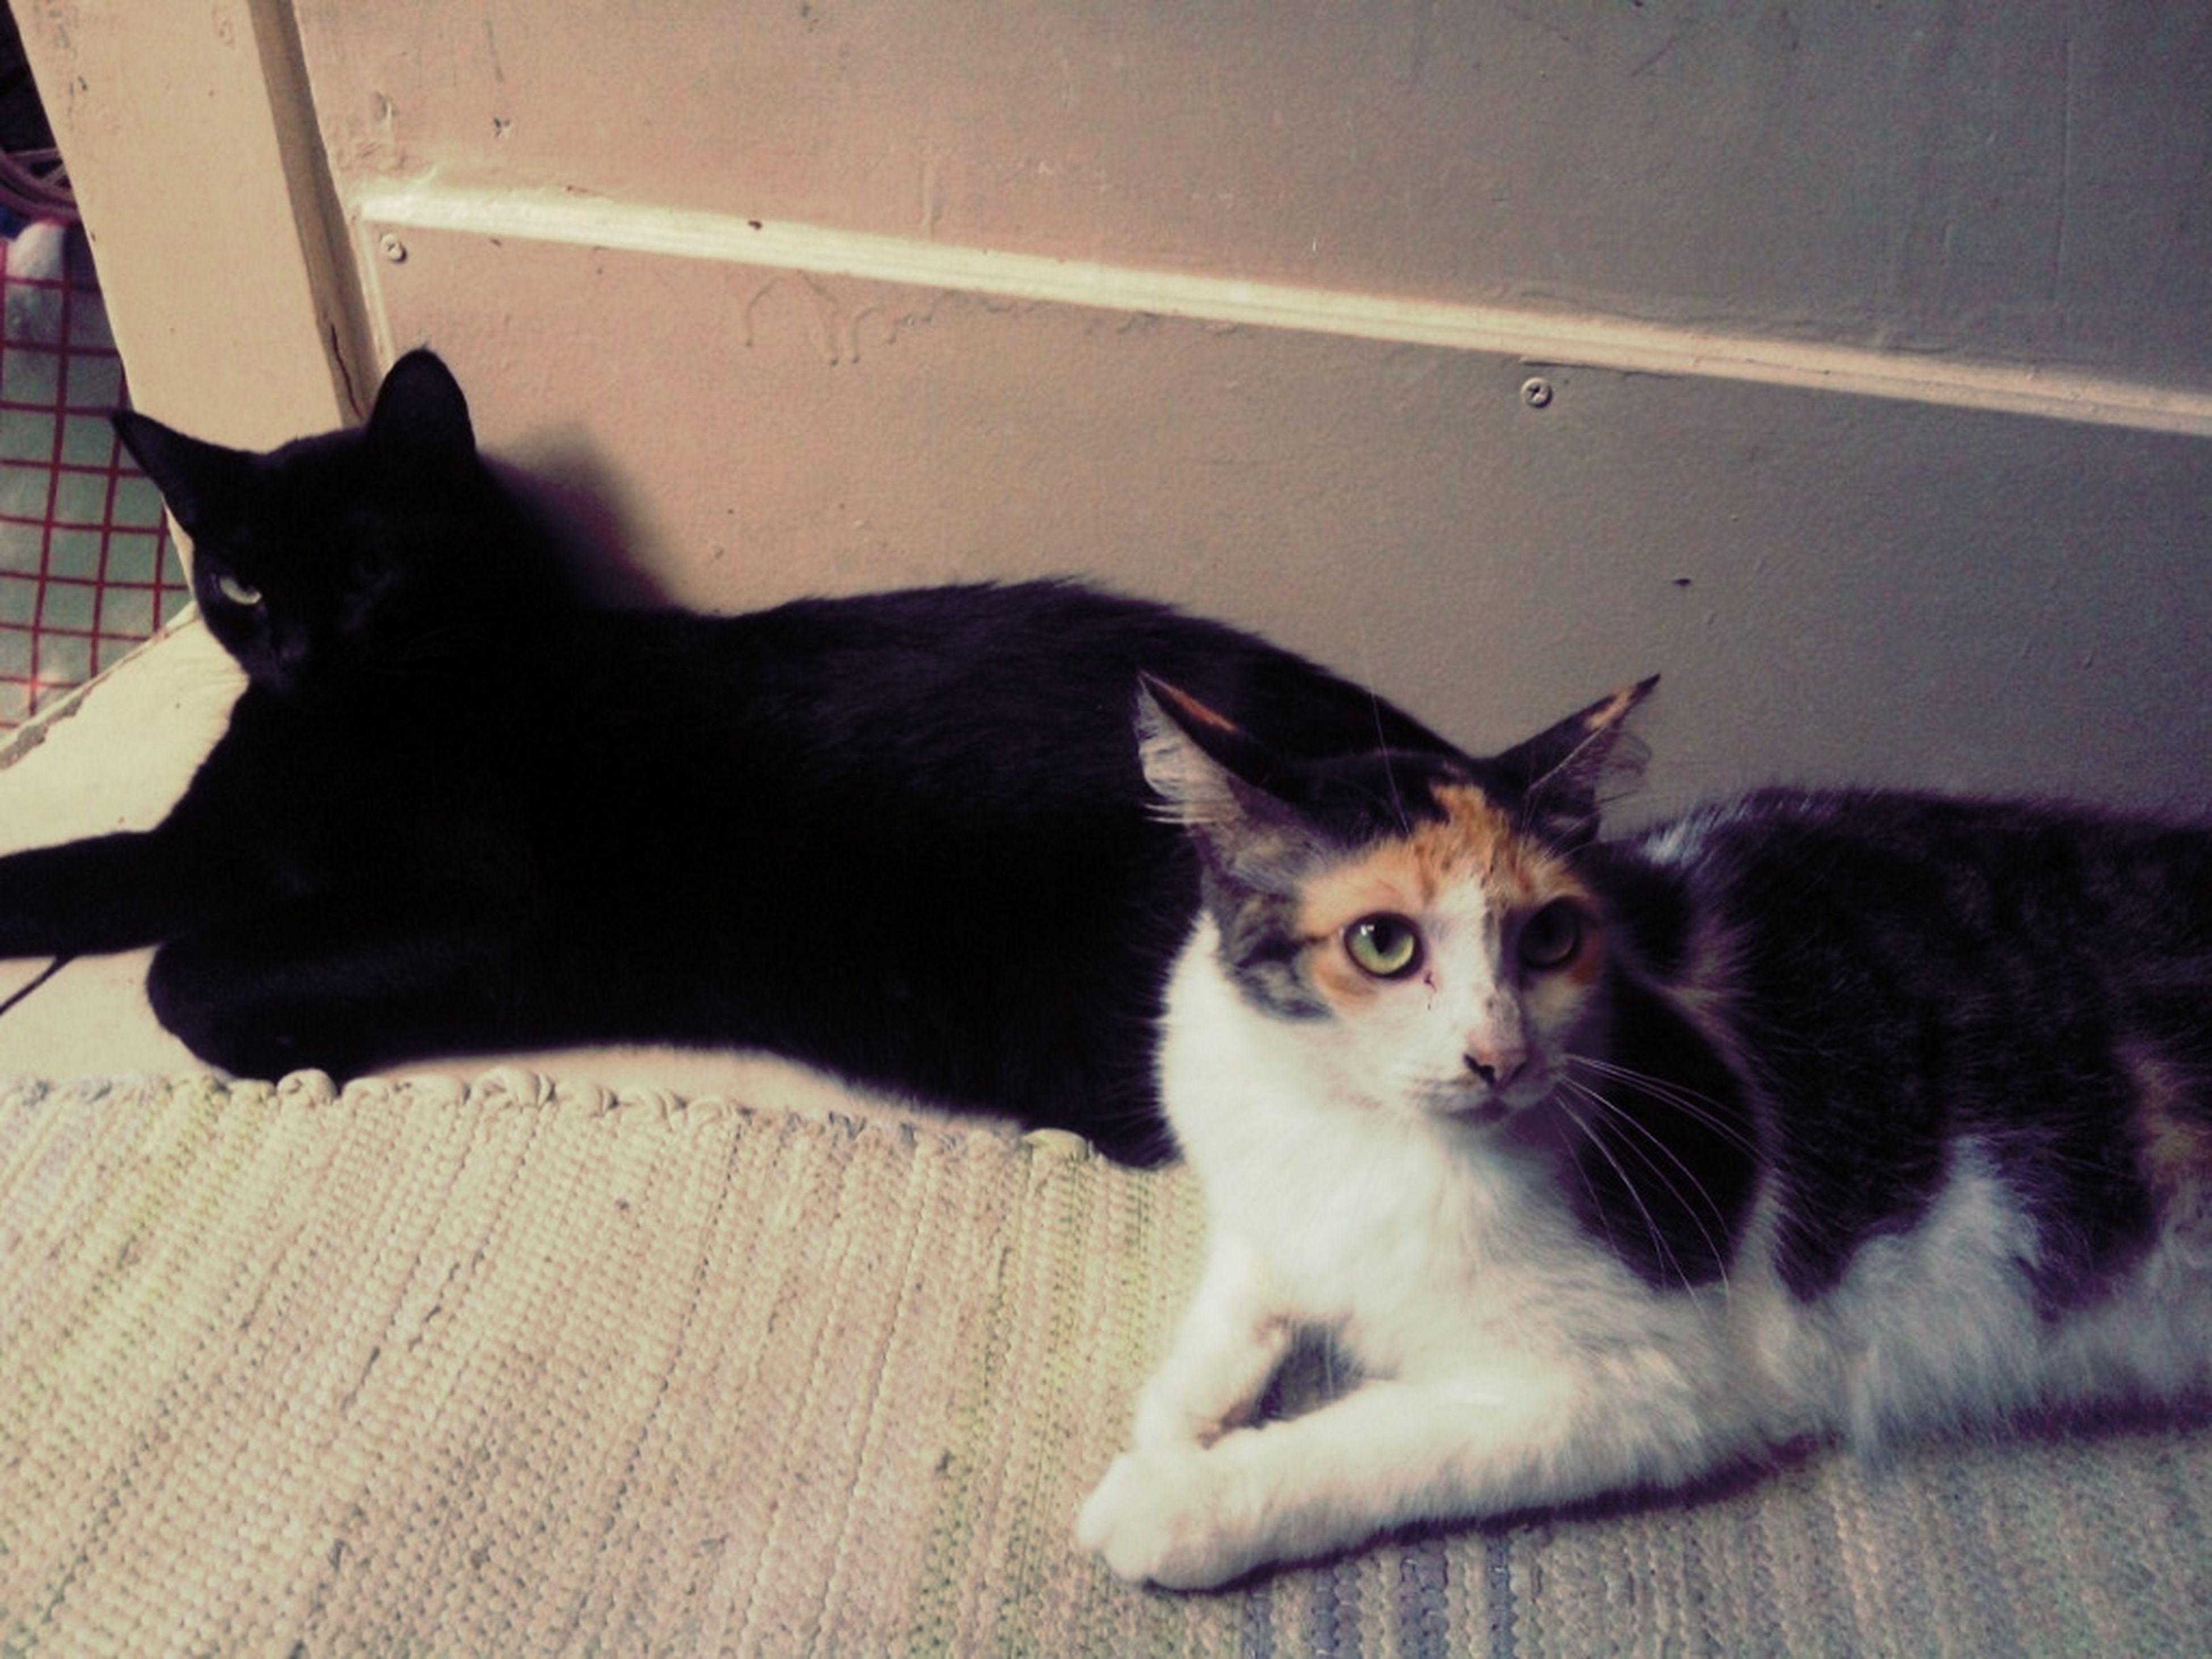 pets, domestic animals, domestic cat, cat, animal themes, mammal, one animal, feline, portrait, looking at camera, indoors, whisker, relaxation, lying down, sitting, two animals, home interior, alertness, resting, flooring